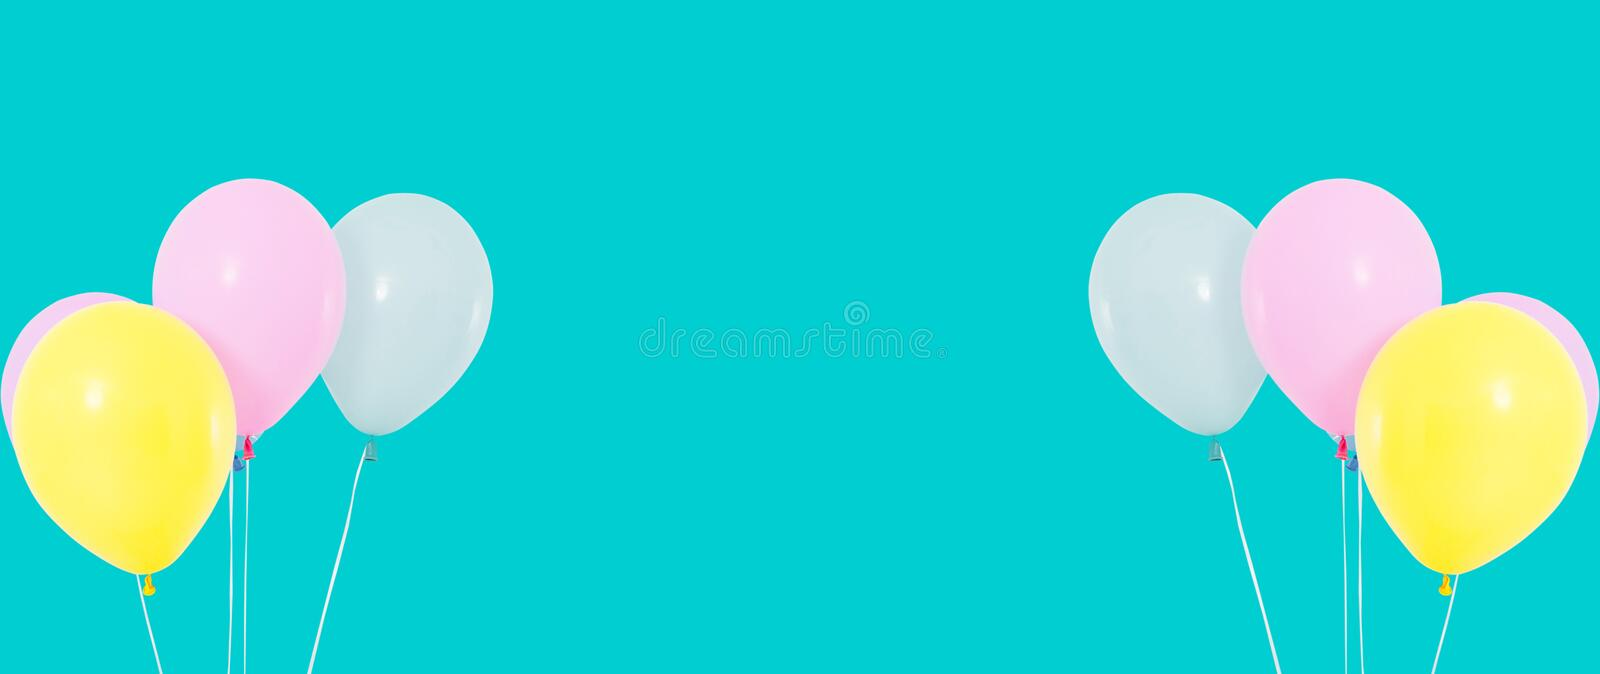 Set Bunch of colorful balloons on background - copy space stock photography